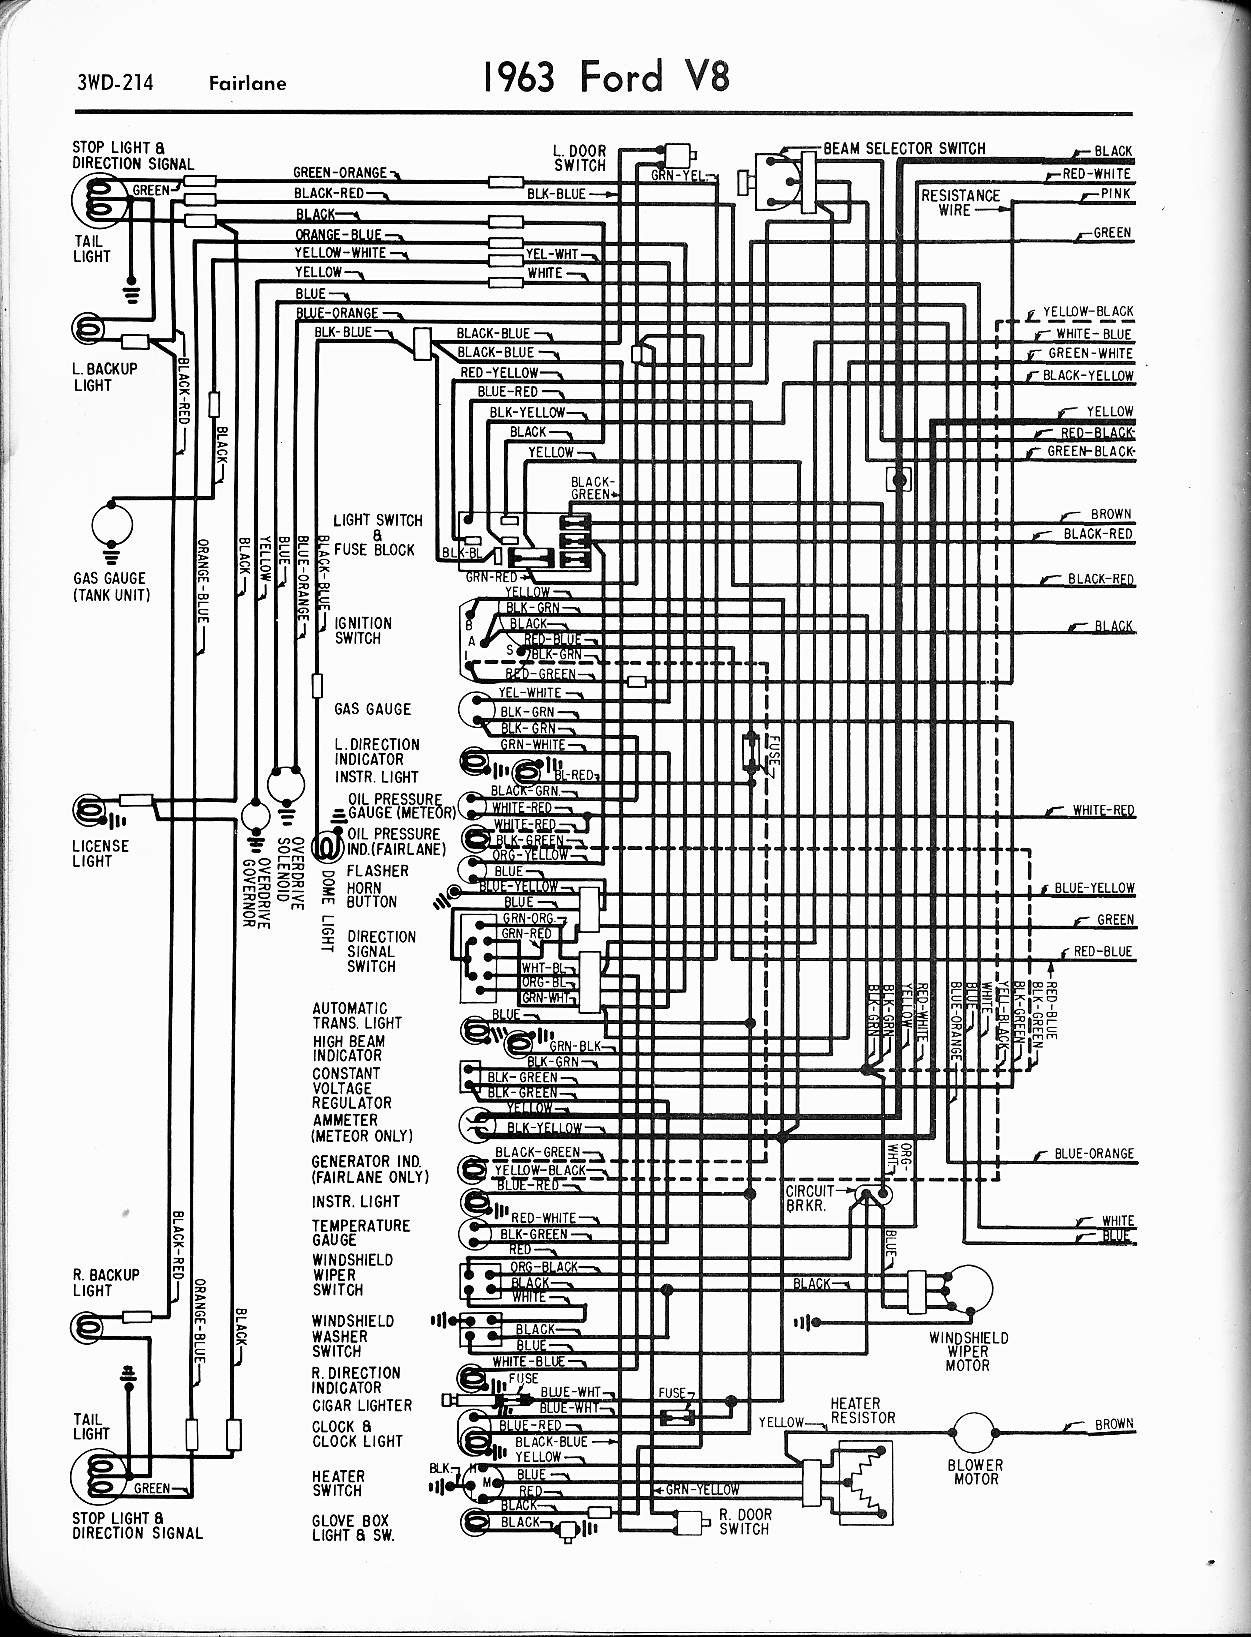 1966 f100 wiring diagram 5s9g9 microdeo de \u202267 ford wiring harness jj purebuild co u2022 rh jj purebuild co 1966 ford f100 headlight switch wiring diagram